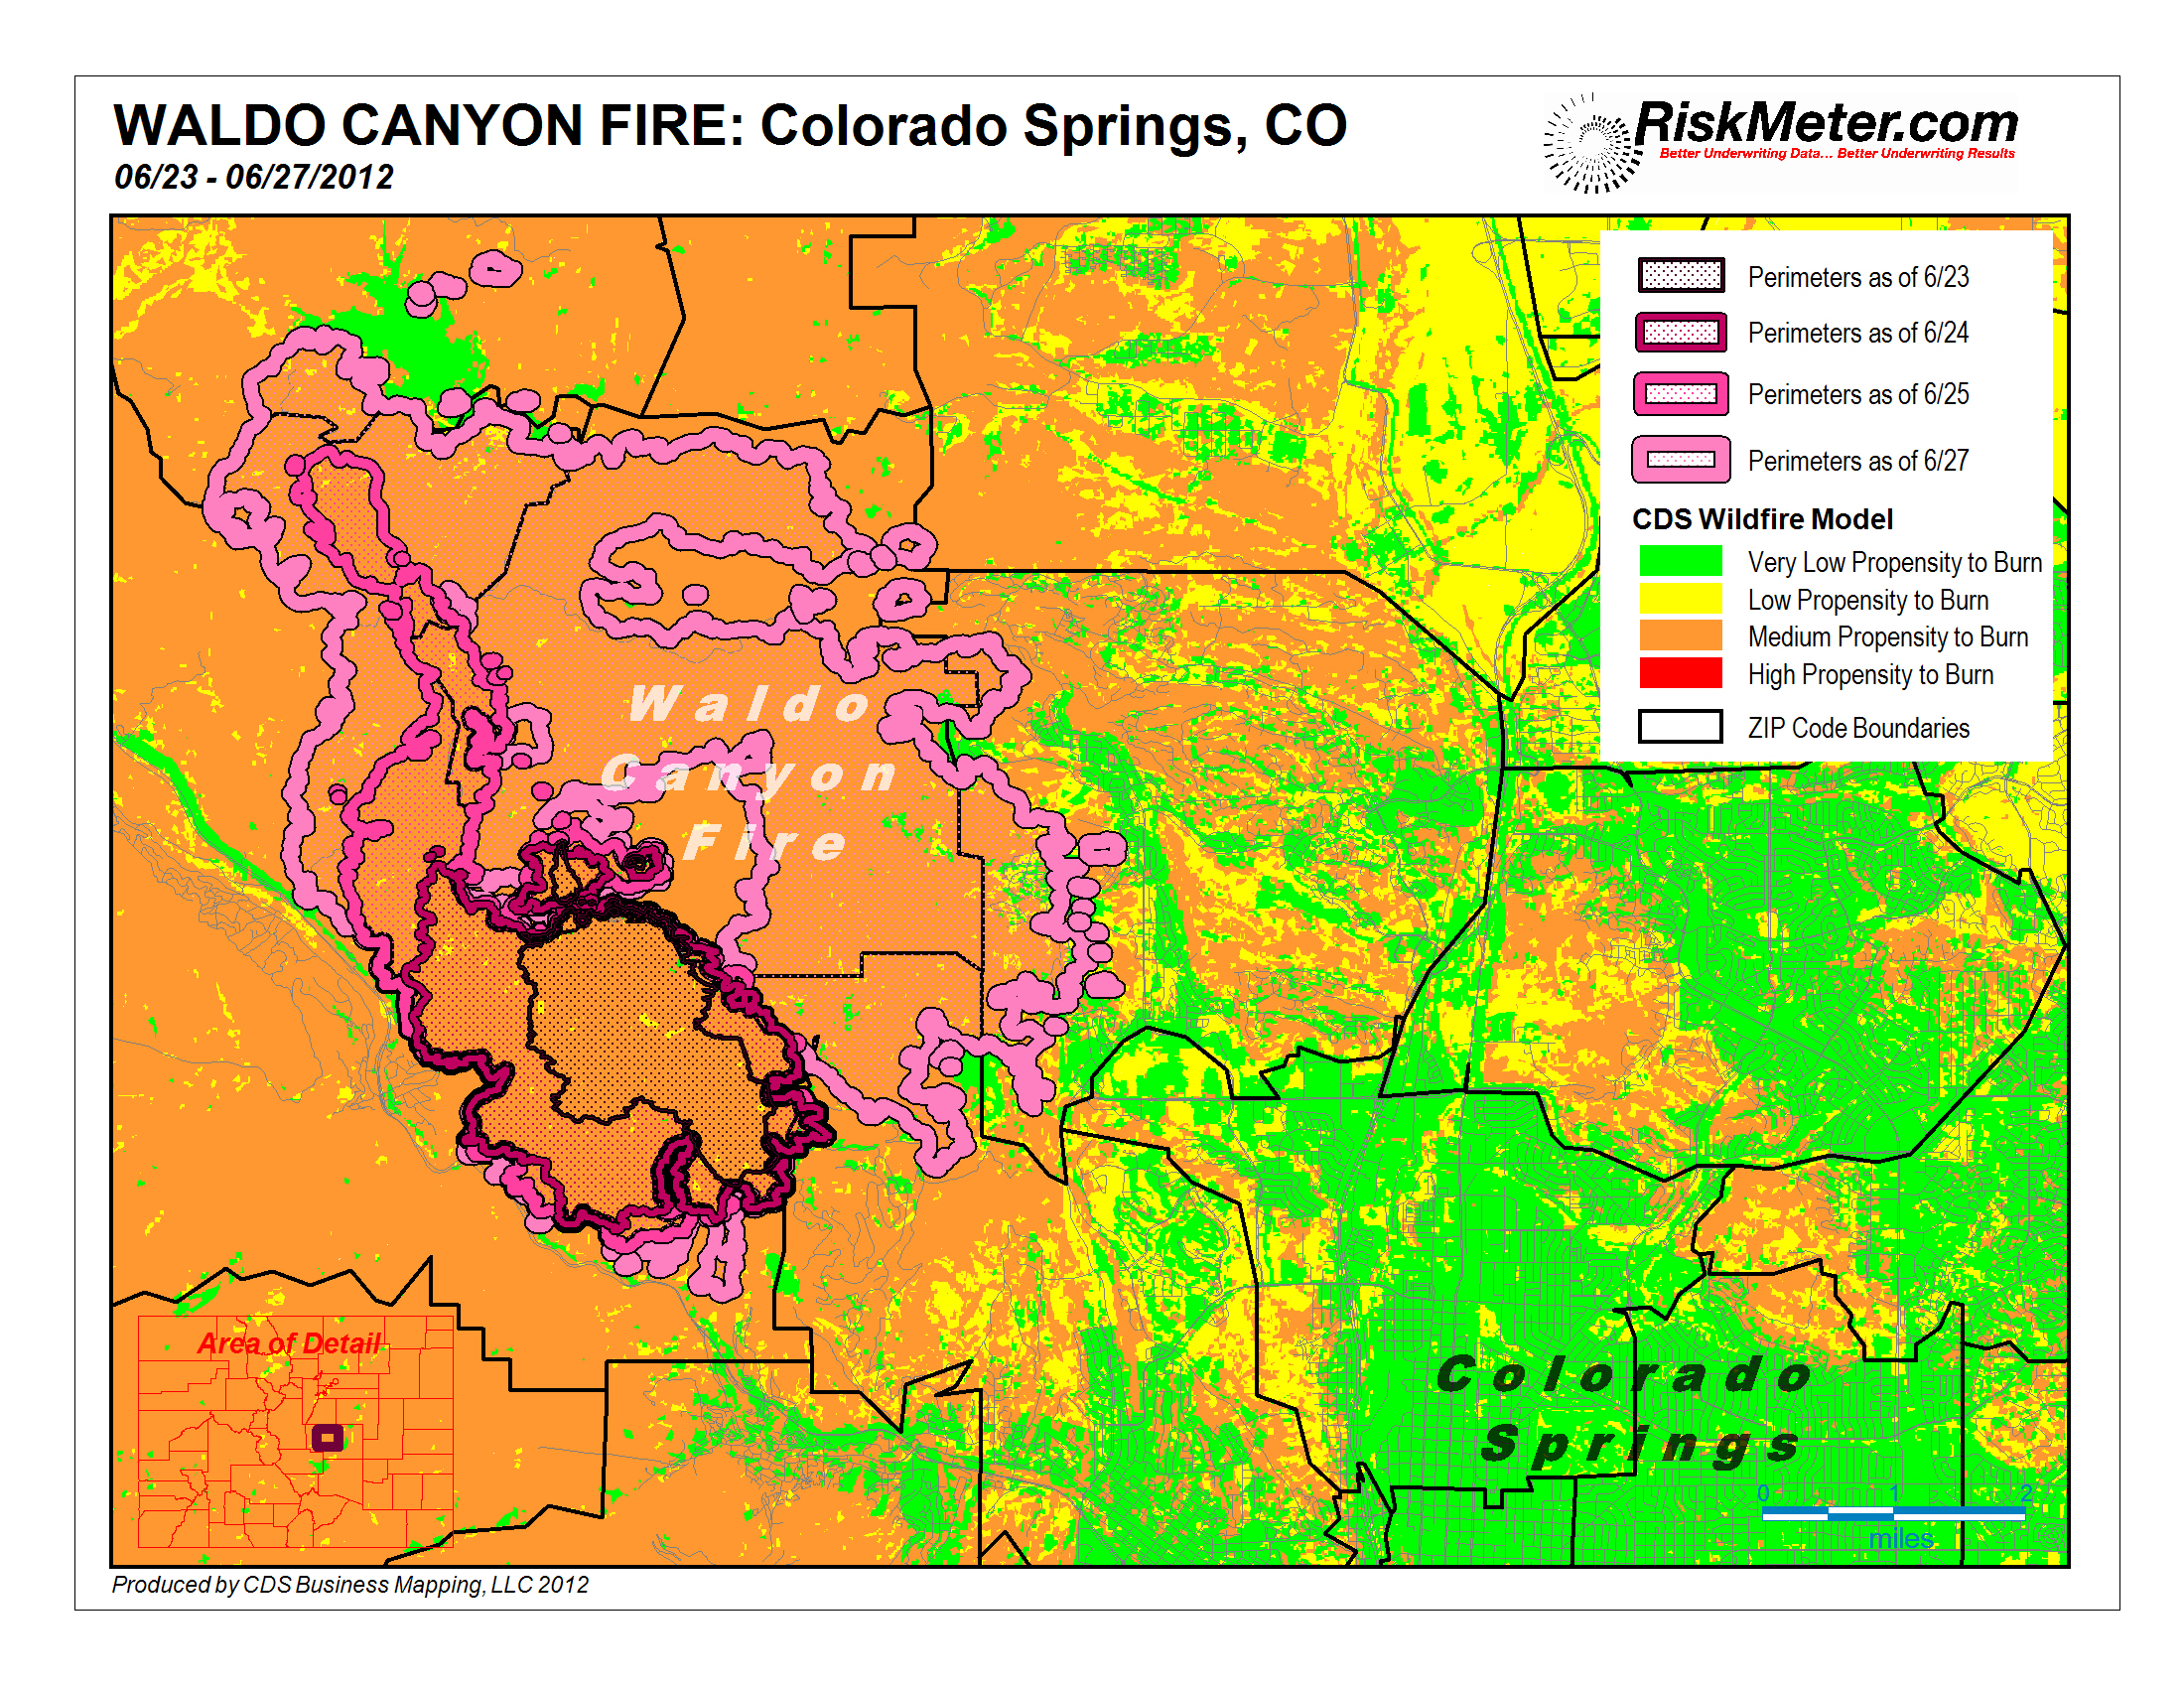 Colorado Fire Threatens Thousands Of Residences